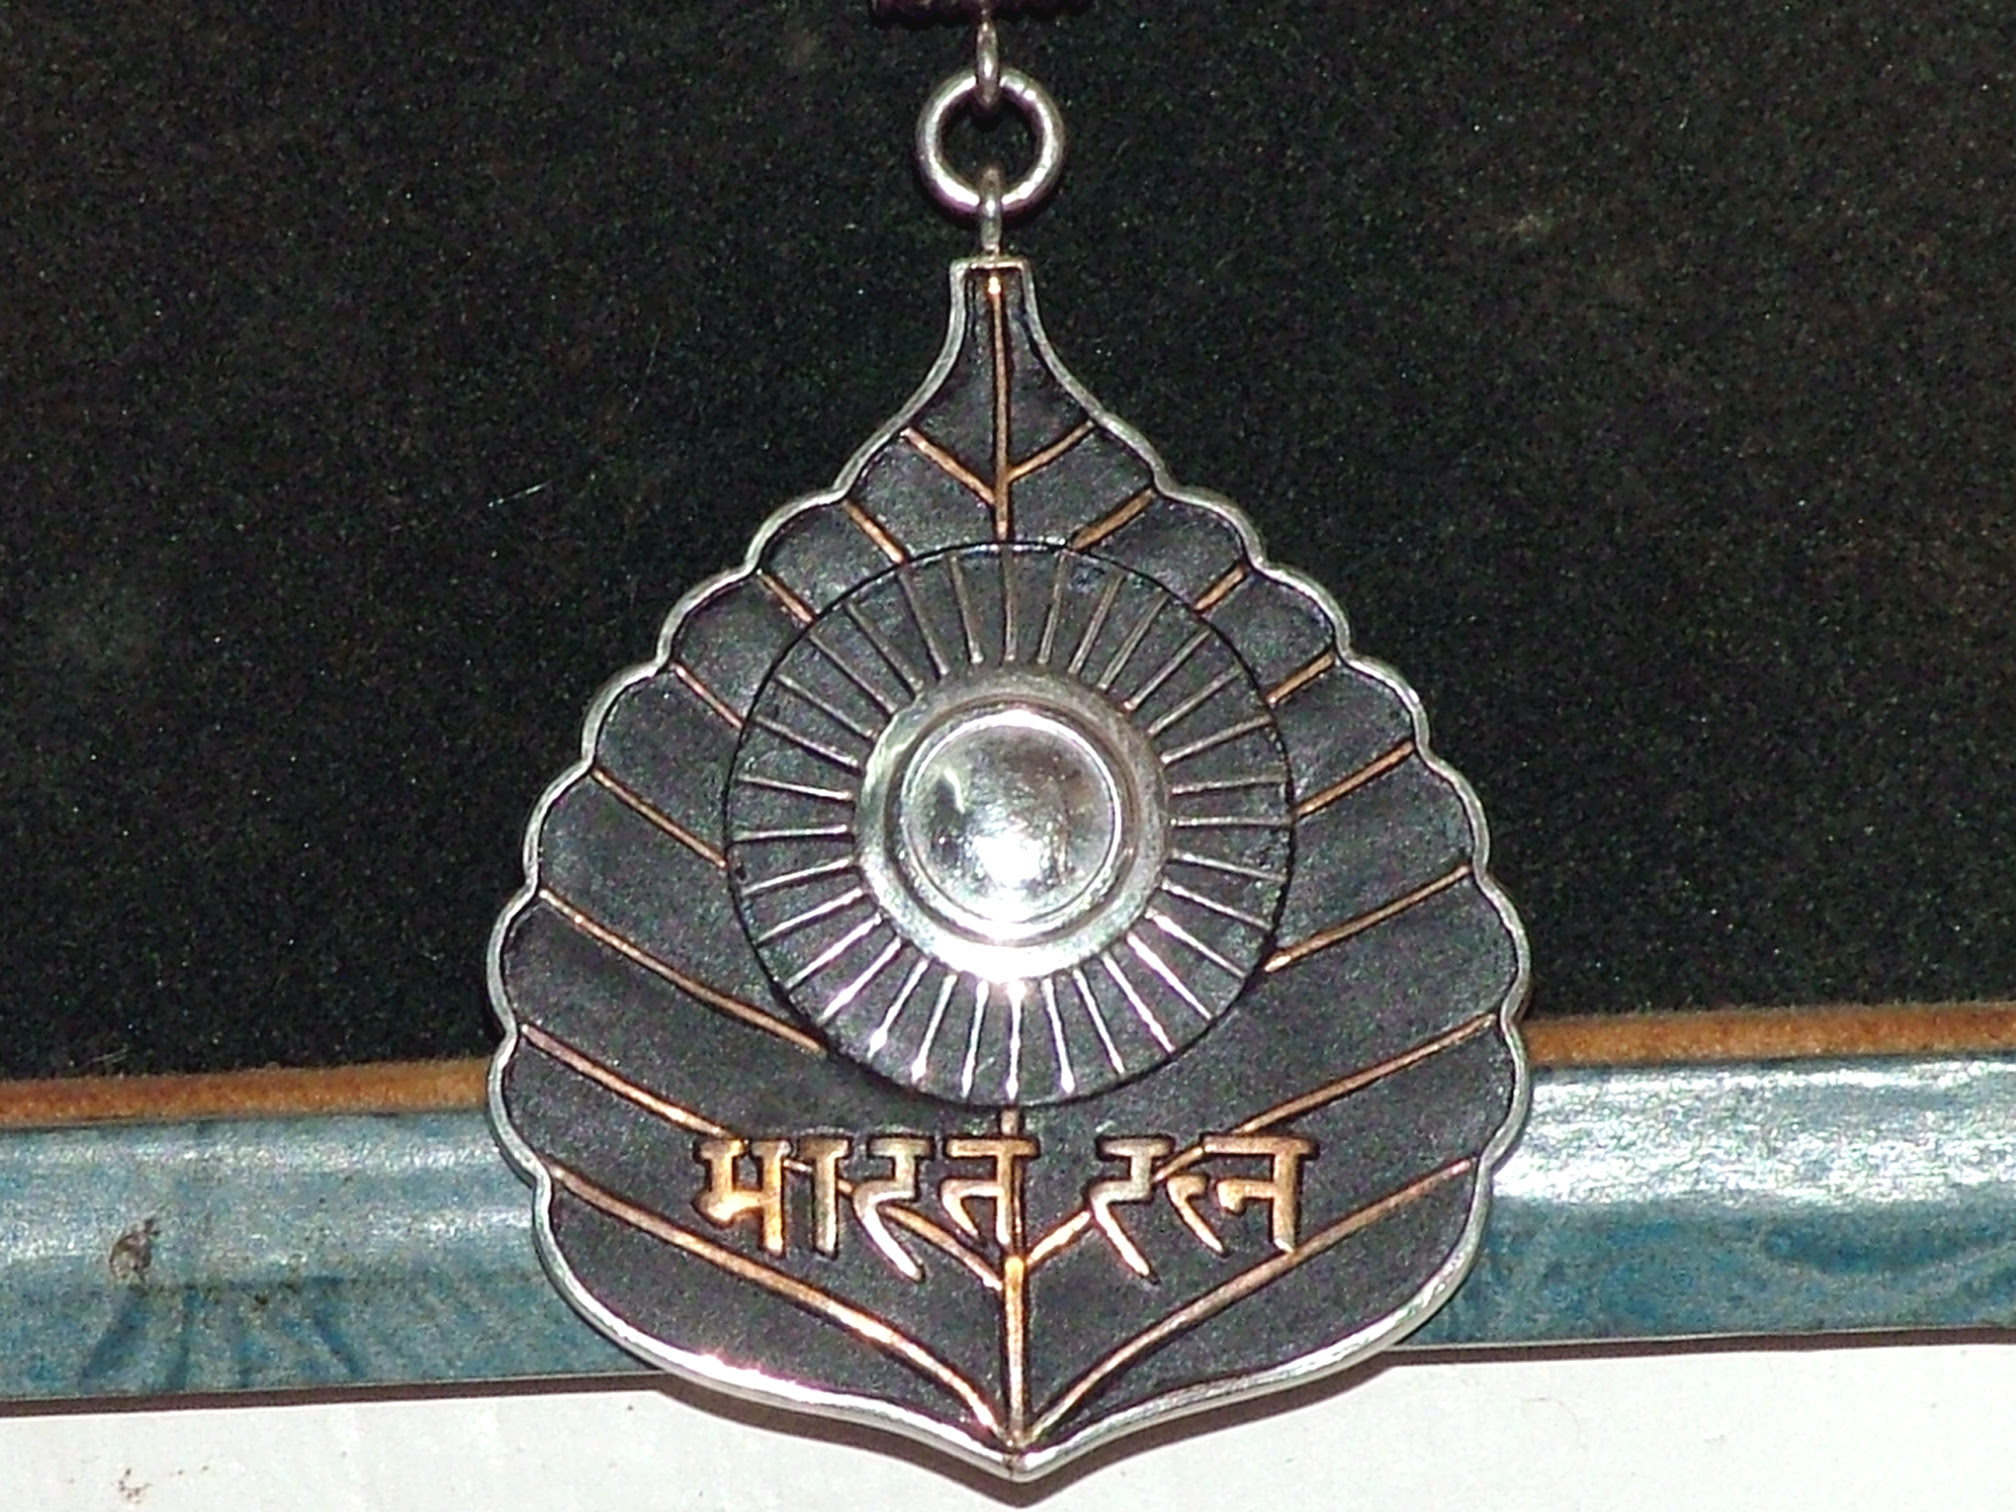 http://upload.wikimedia.org/wikipedia/commons/f/f6/Bharat_Ratna.jpg